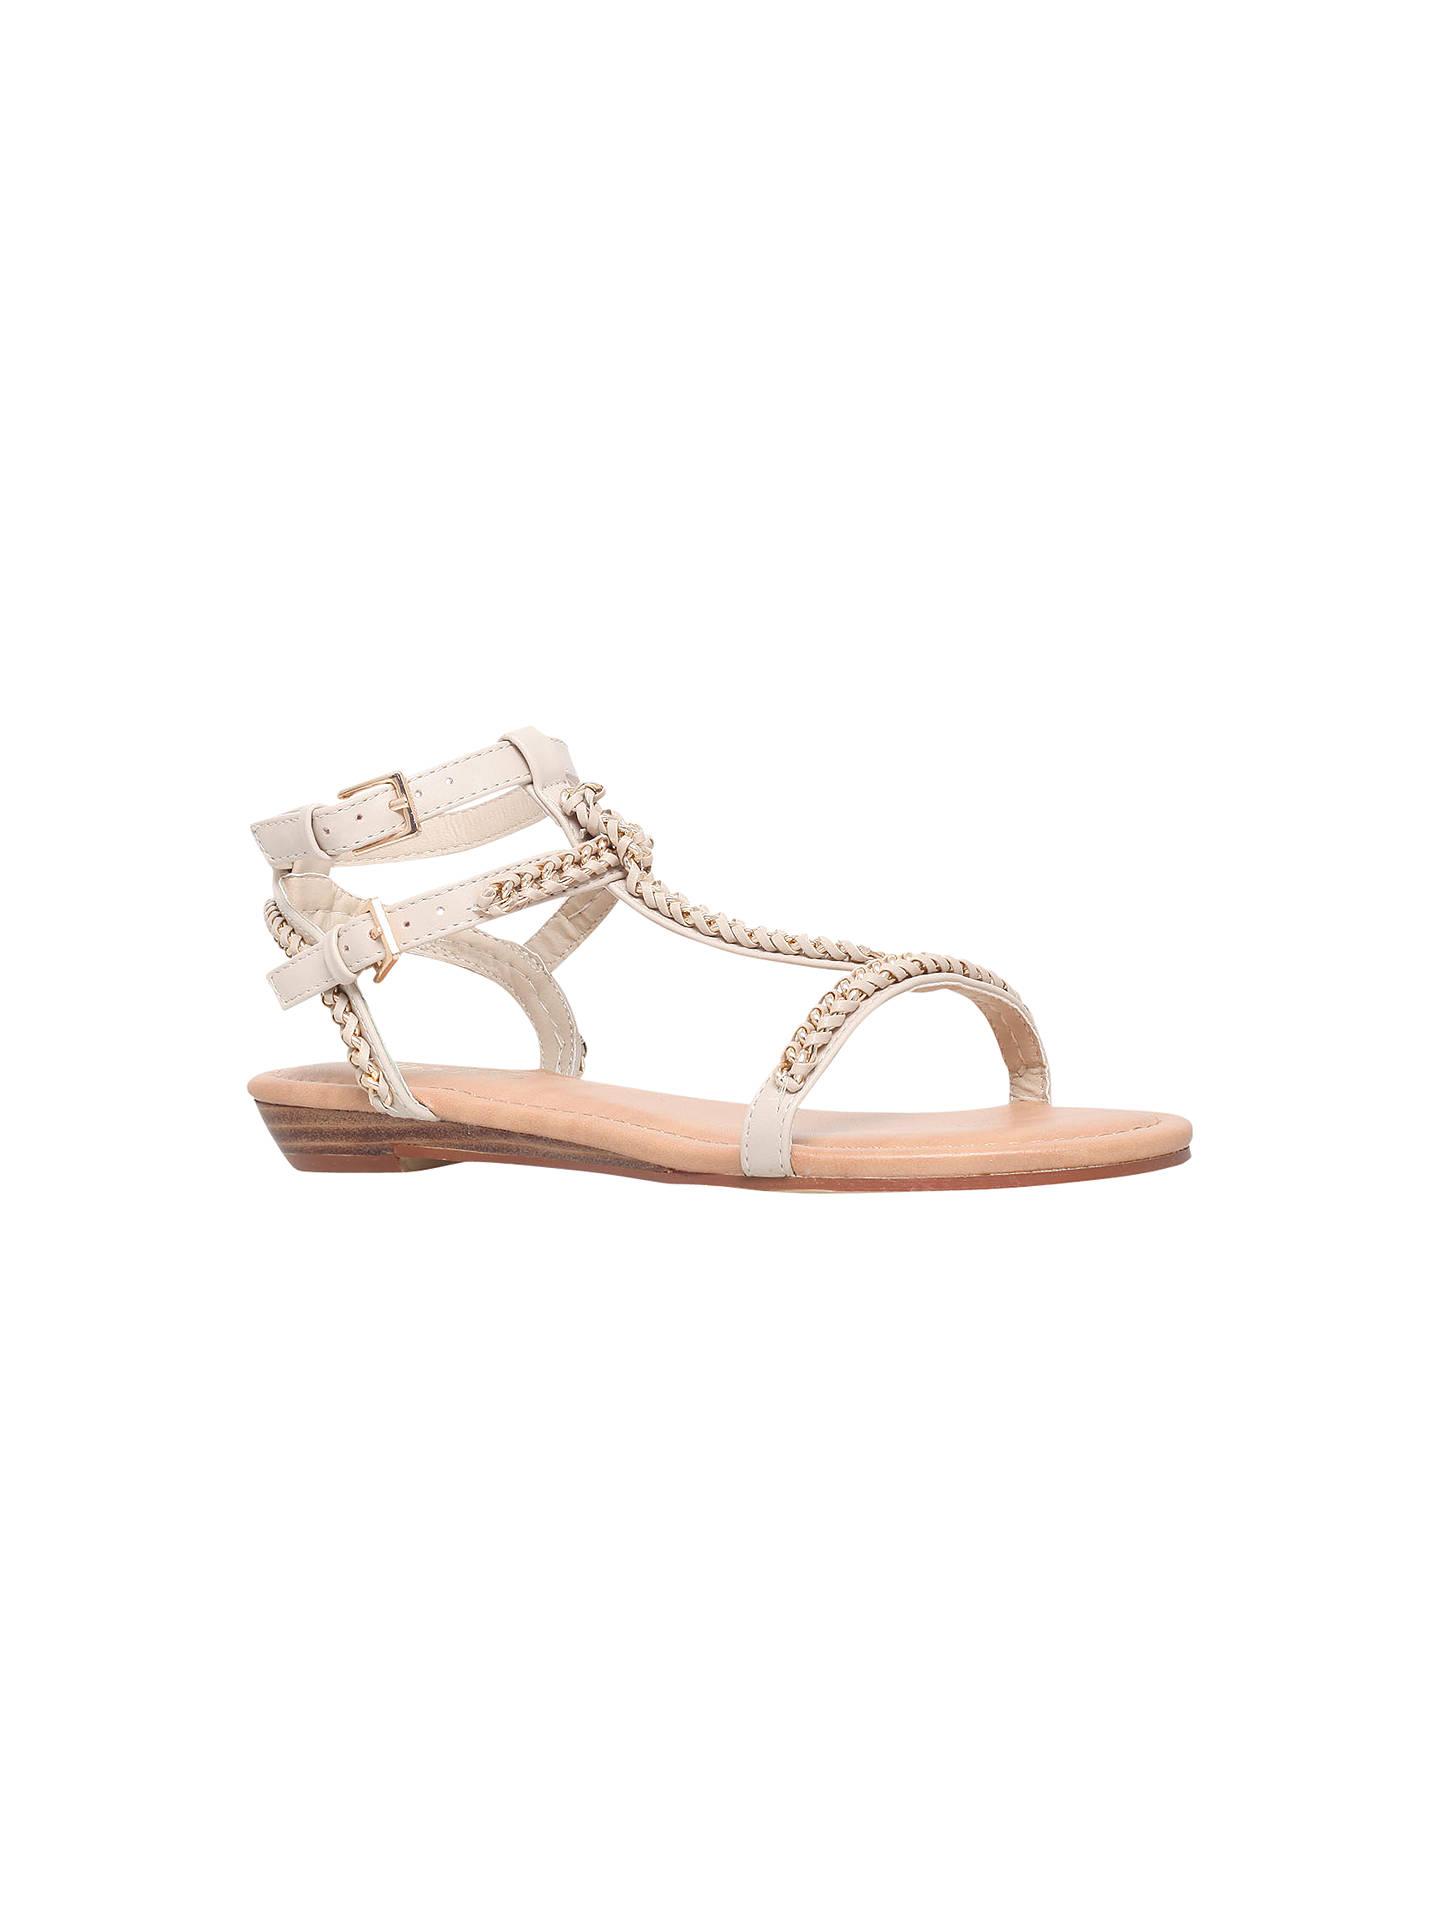 Miss KG Roz Chain Link Flat Sandals, Nude at John Lewis